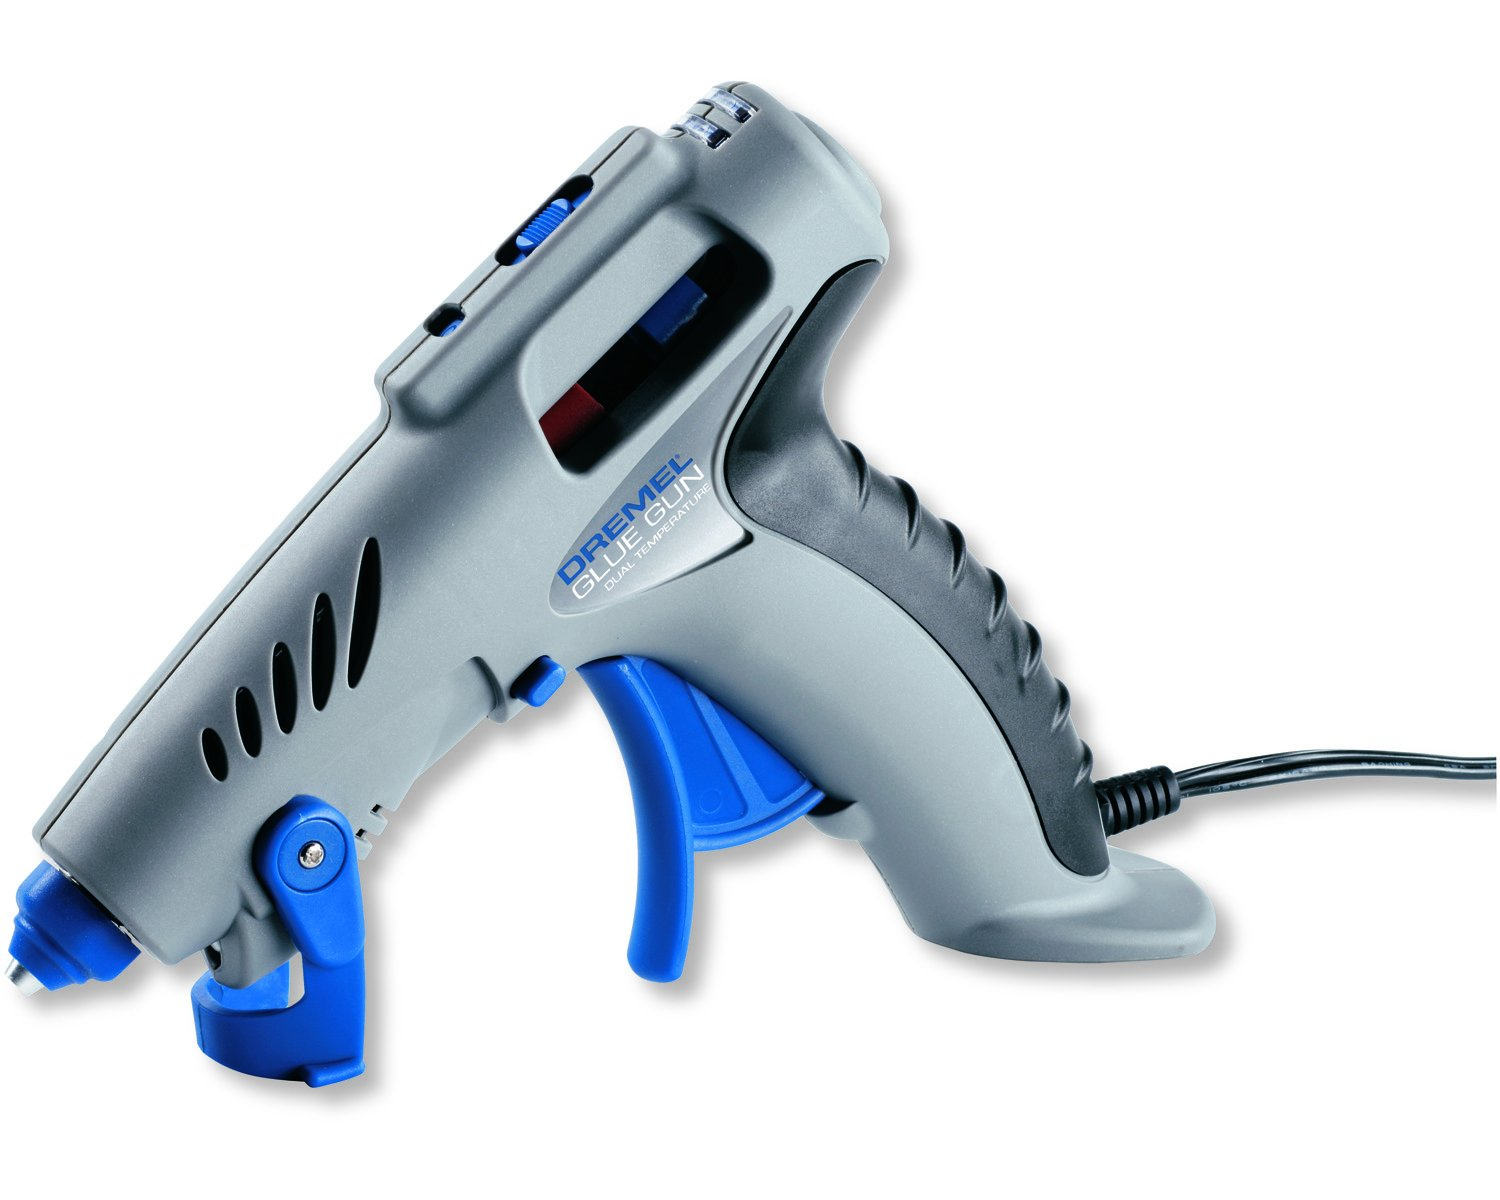 Dremel Glue Gun 910-3 Compact Tool (165 degree Celsius), 3 Accessories Robert Bosch Ltd F0130910JB